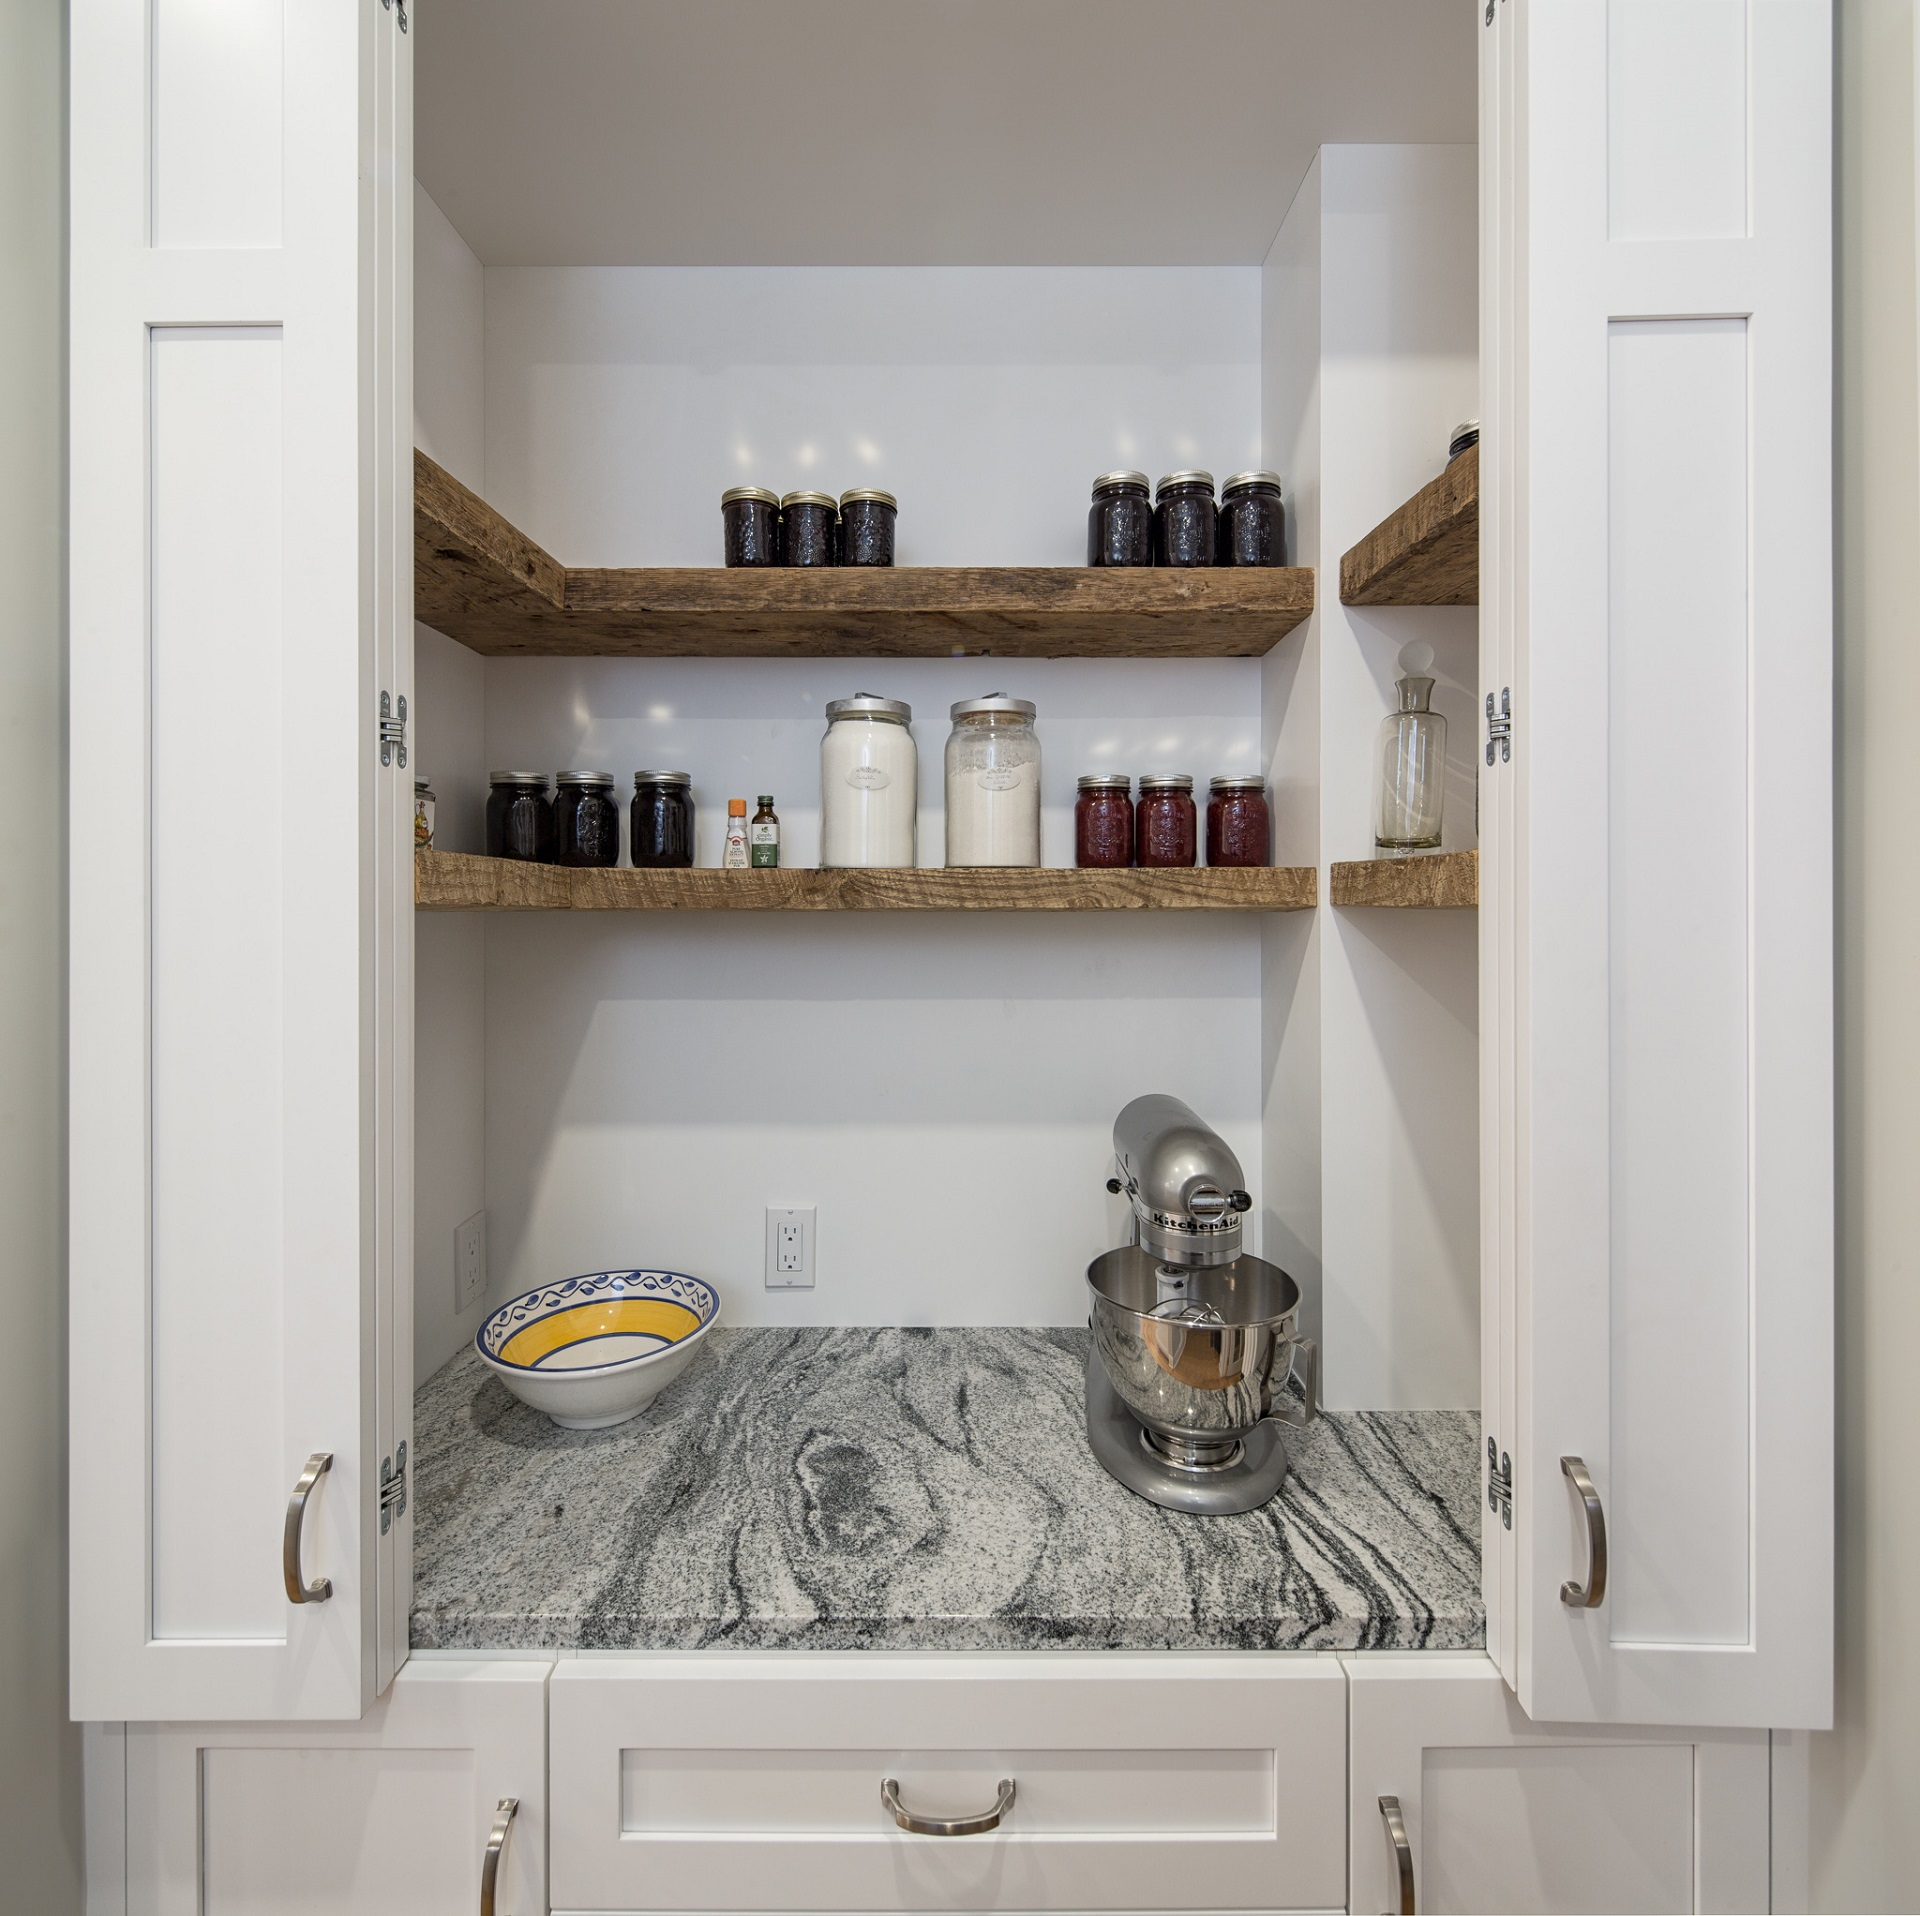 A pantry with wooden floating shelves.